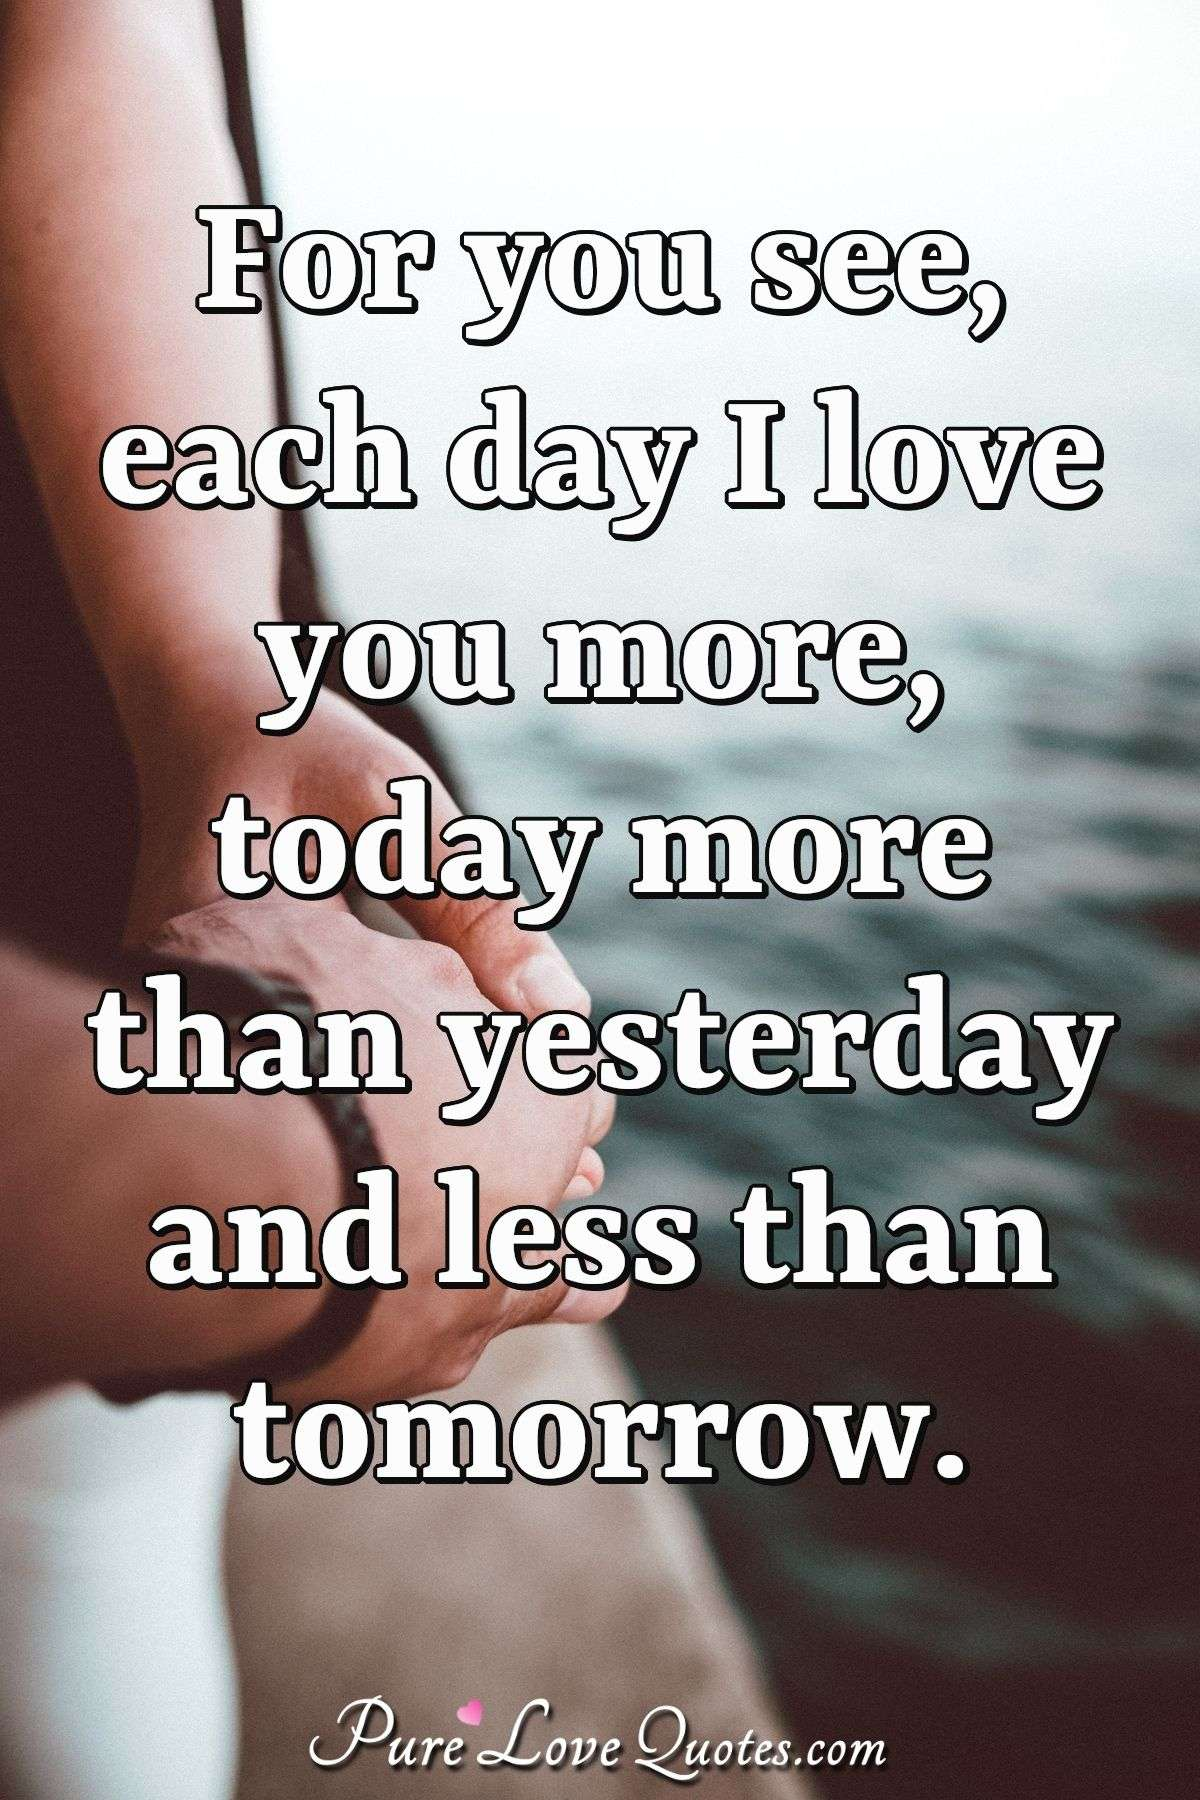 For you see, each day I love you more, today more than yesterday